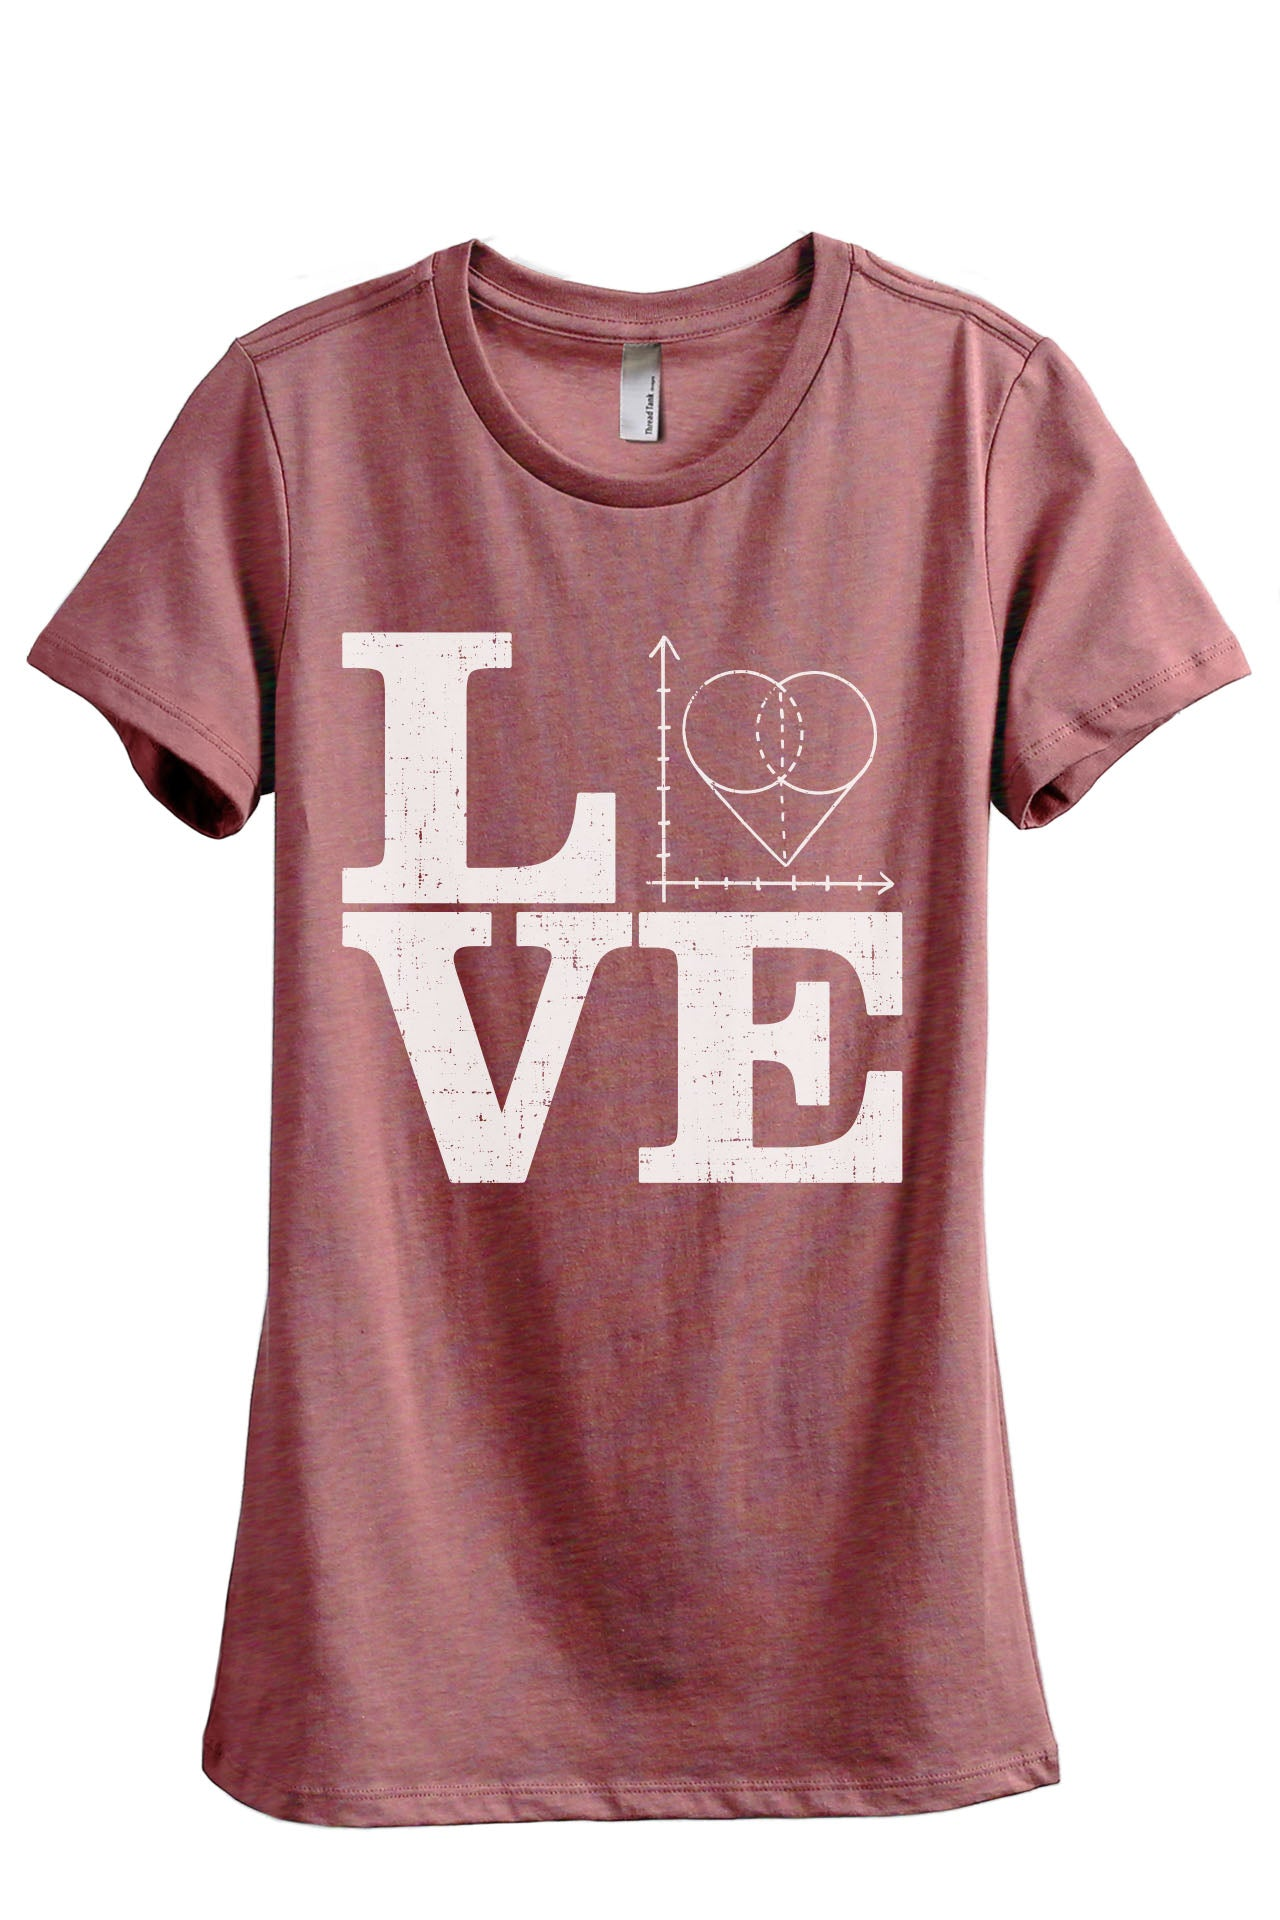 Teach Math LOVE Women's Relaxed Crewneck T-Shirt Top Tee Heather Rouge